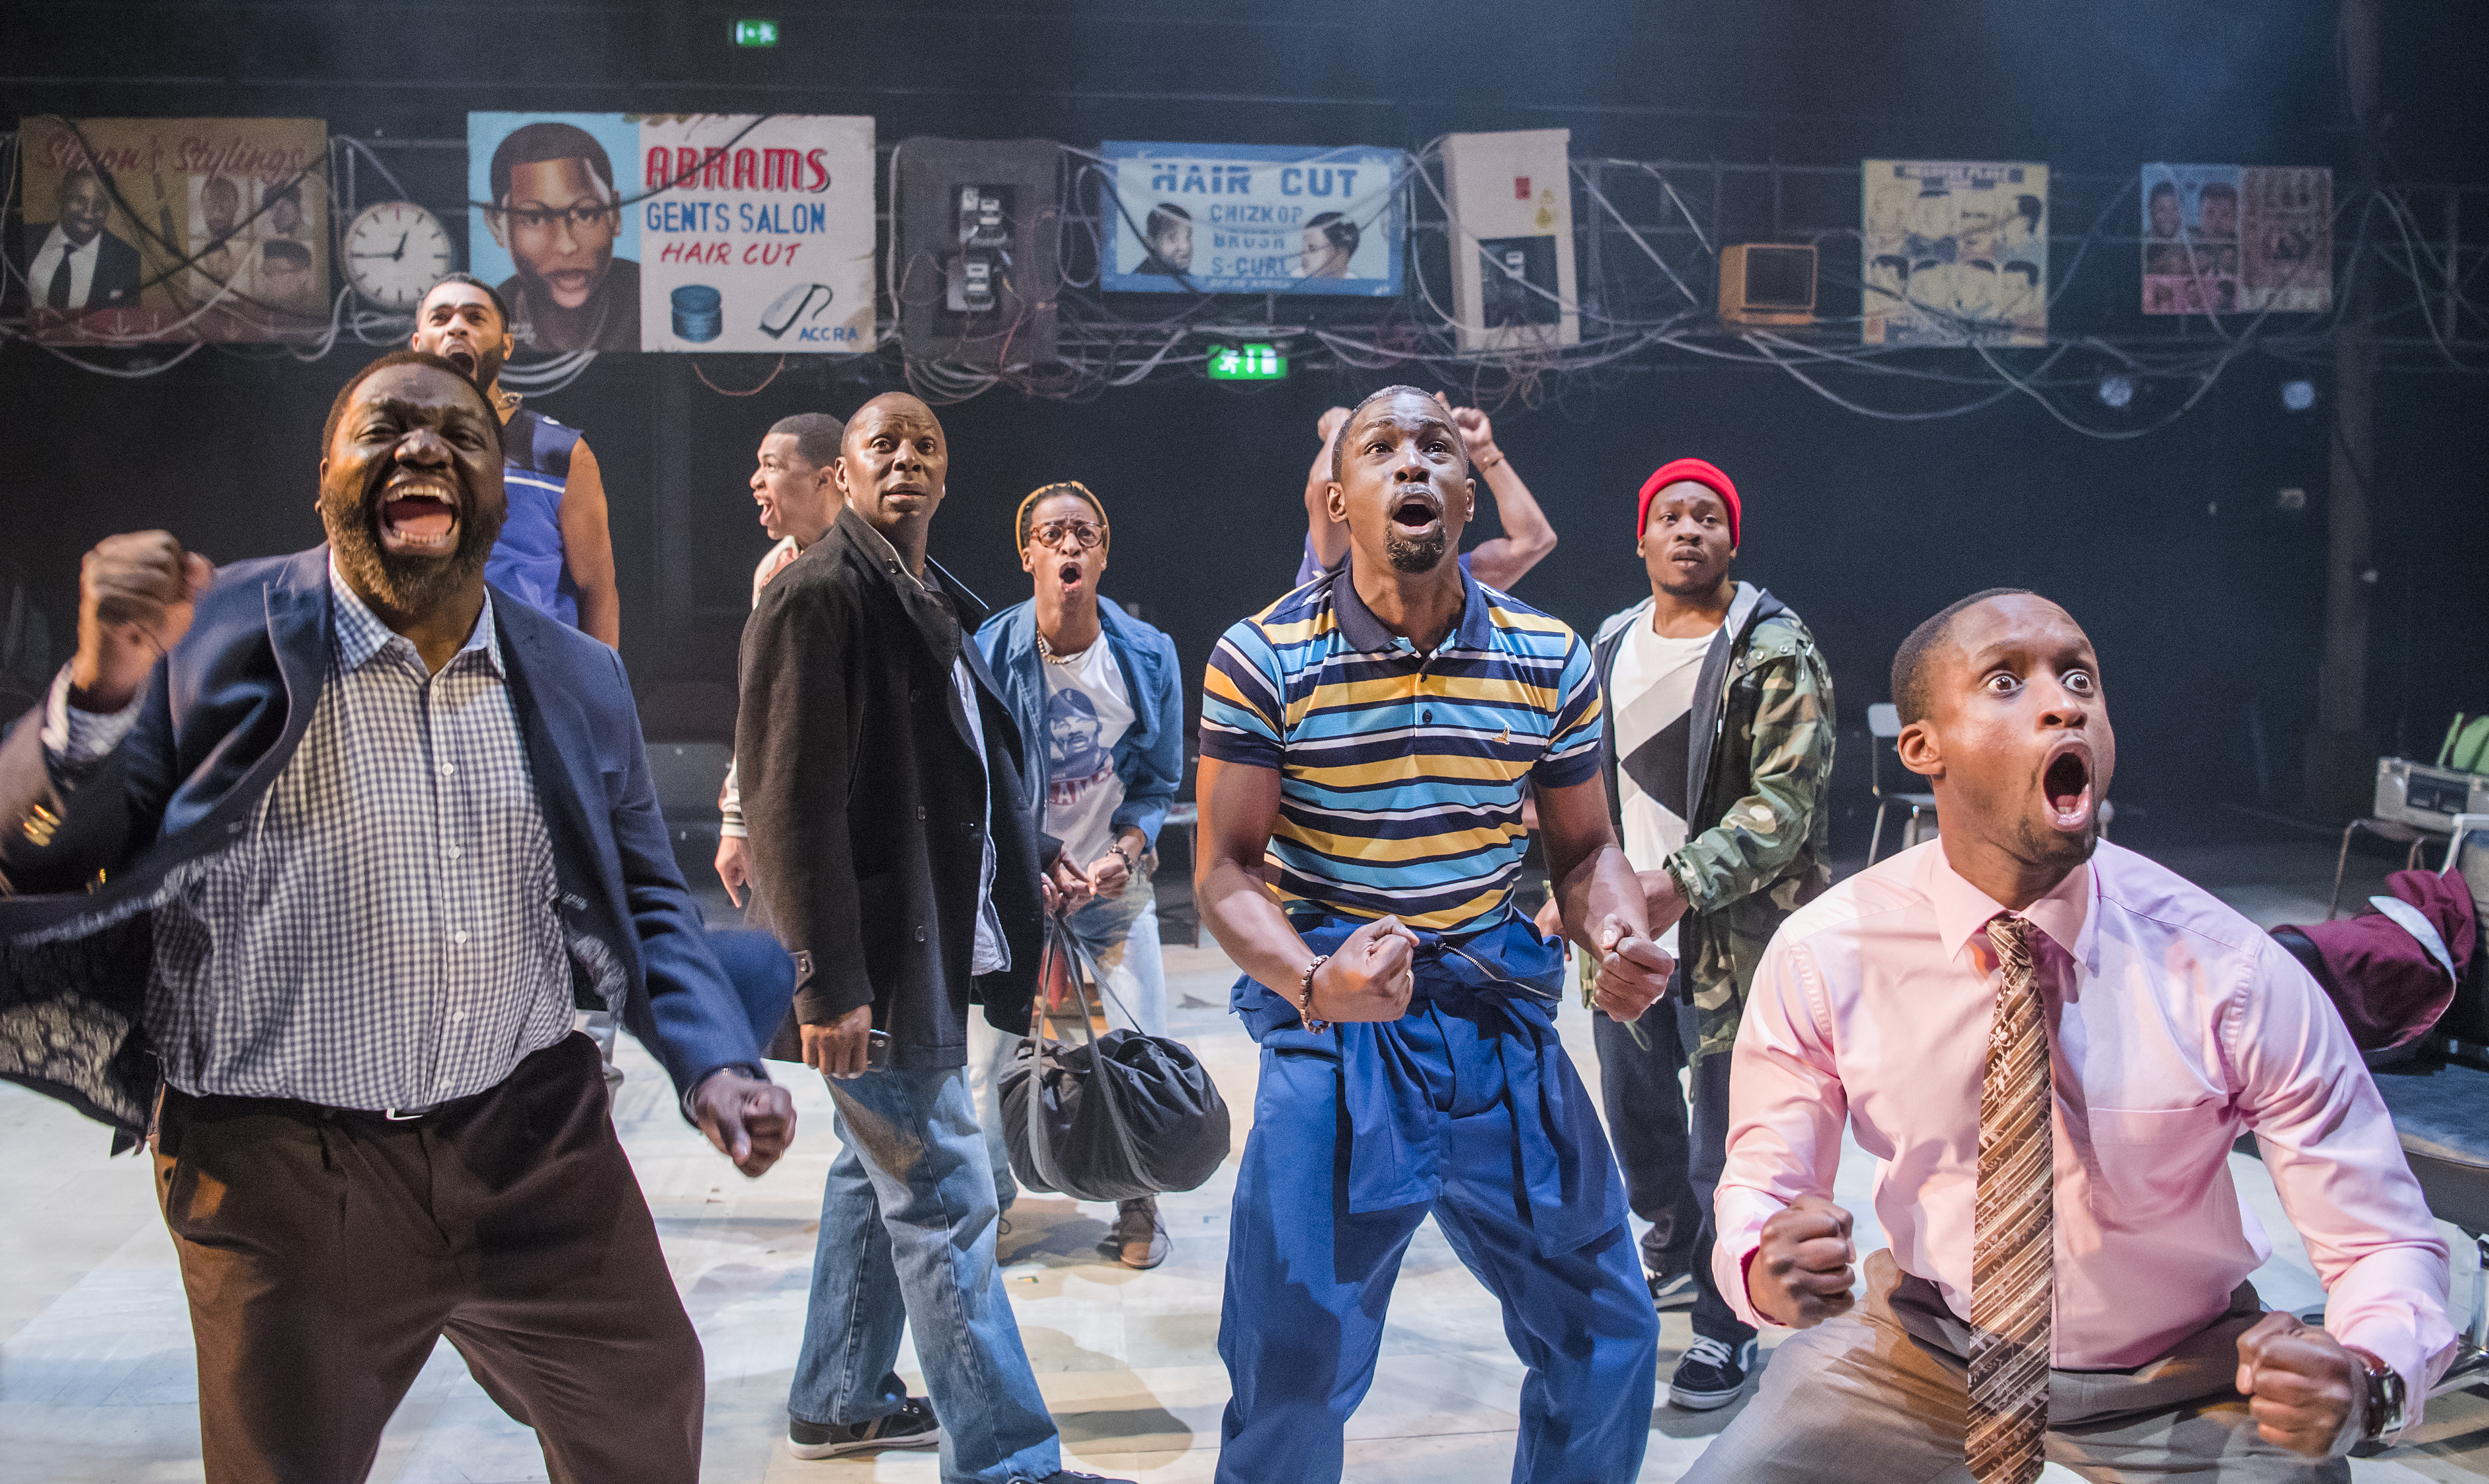 Coronavirus: National Theatre announces new productions to be streamed for free including Barber Shop Chronicles